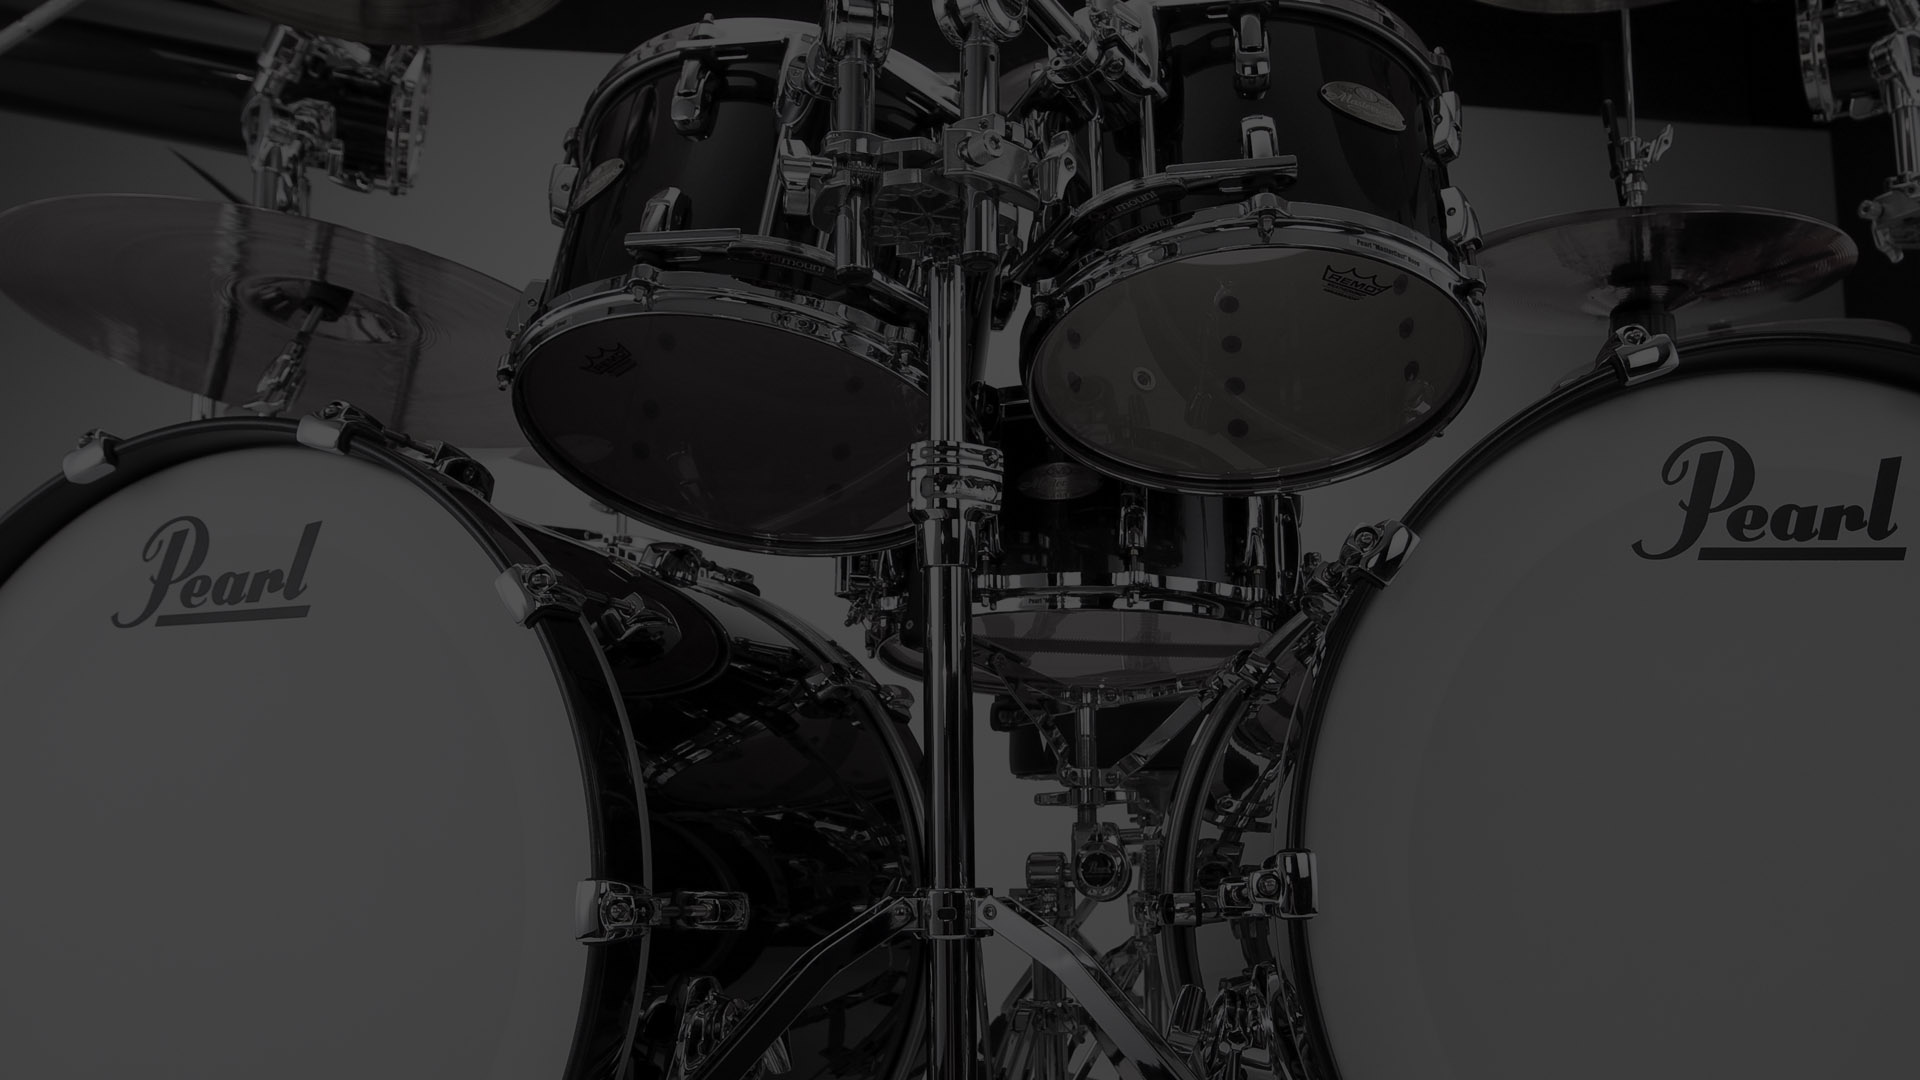 Mr-Gunnar-Pearl-Drums-are-the-best-drums-ever-no-question-about-it-I-play-them-because-I-can-ge-wallpaper-wpc9007850